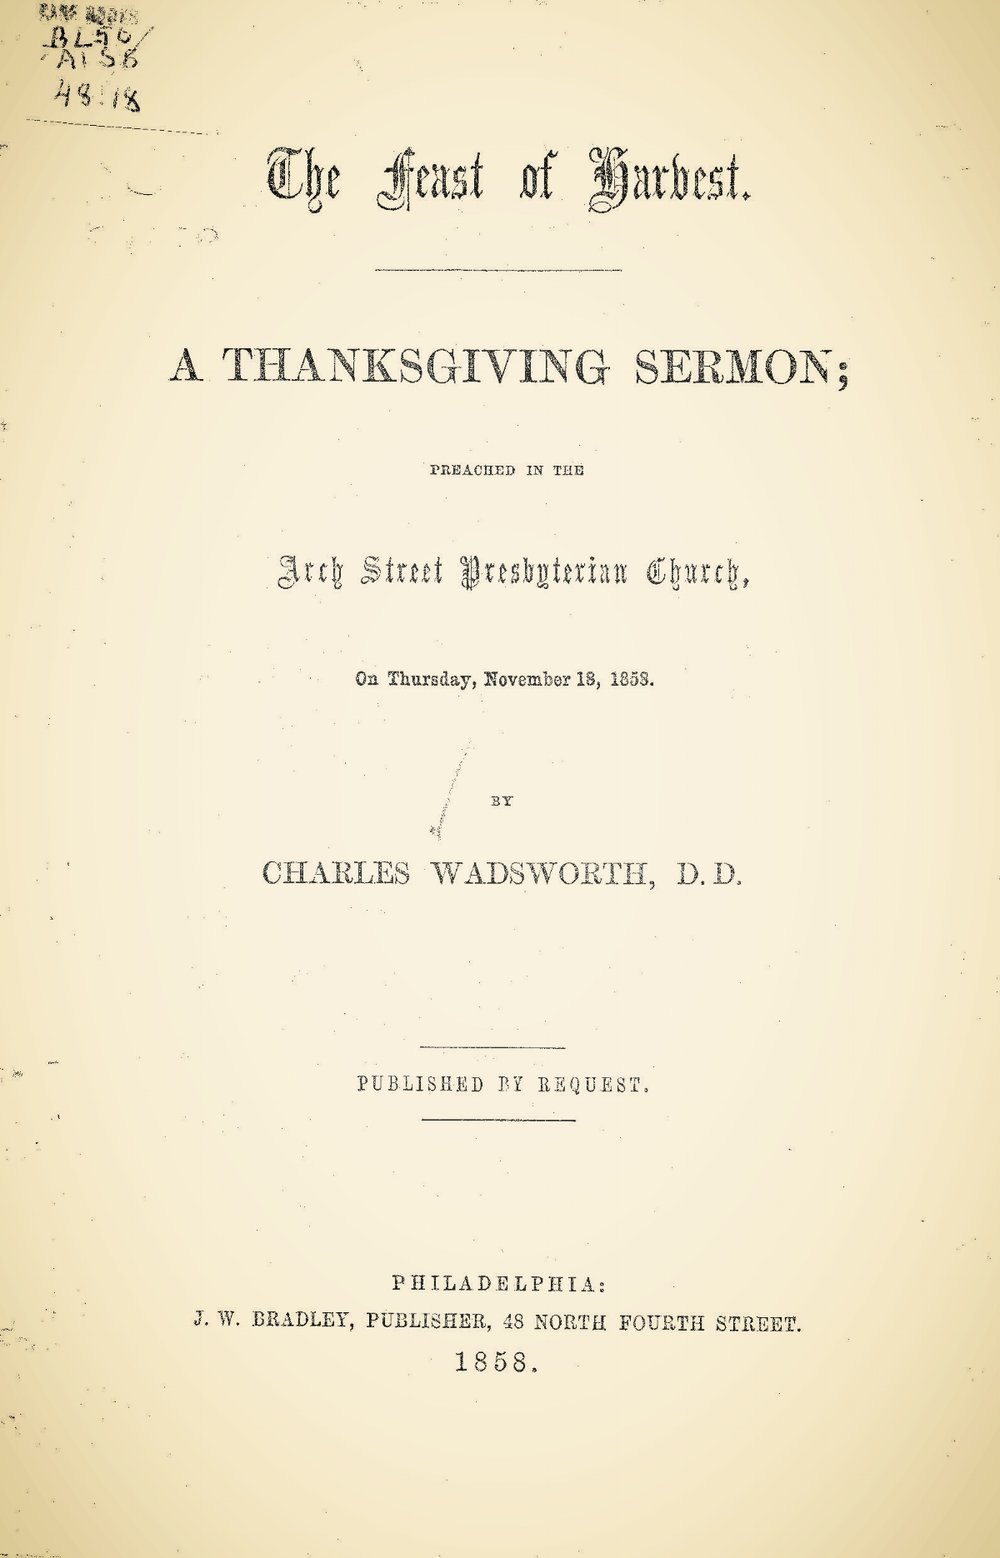 Wadsworth, Charles, The Feast of Harvest Title Page.jpg